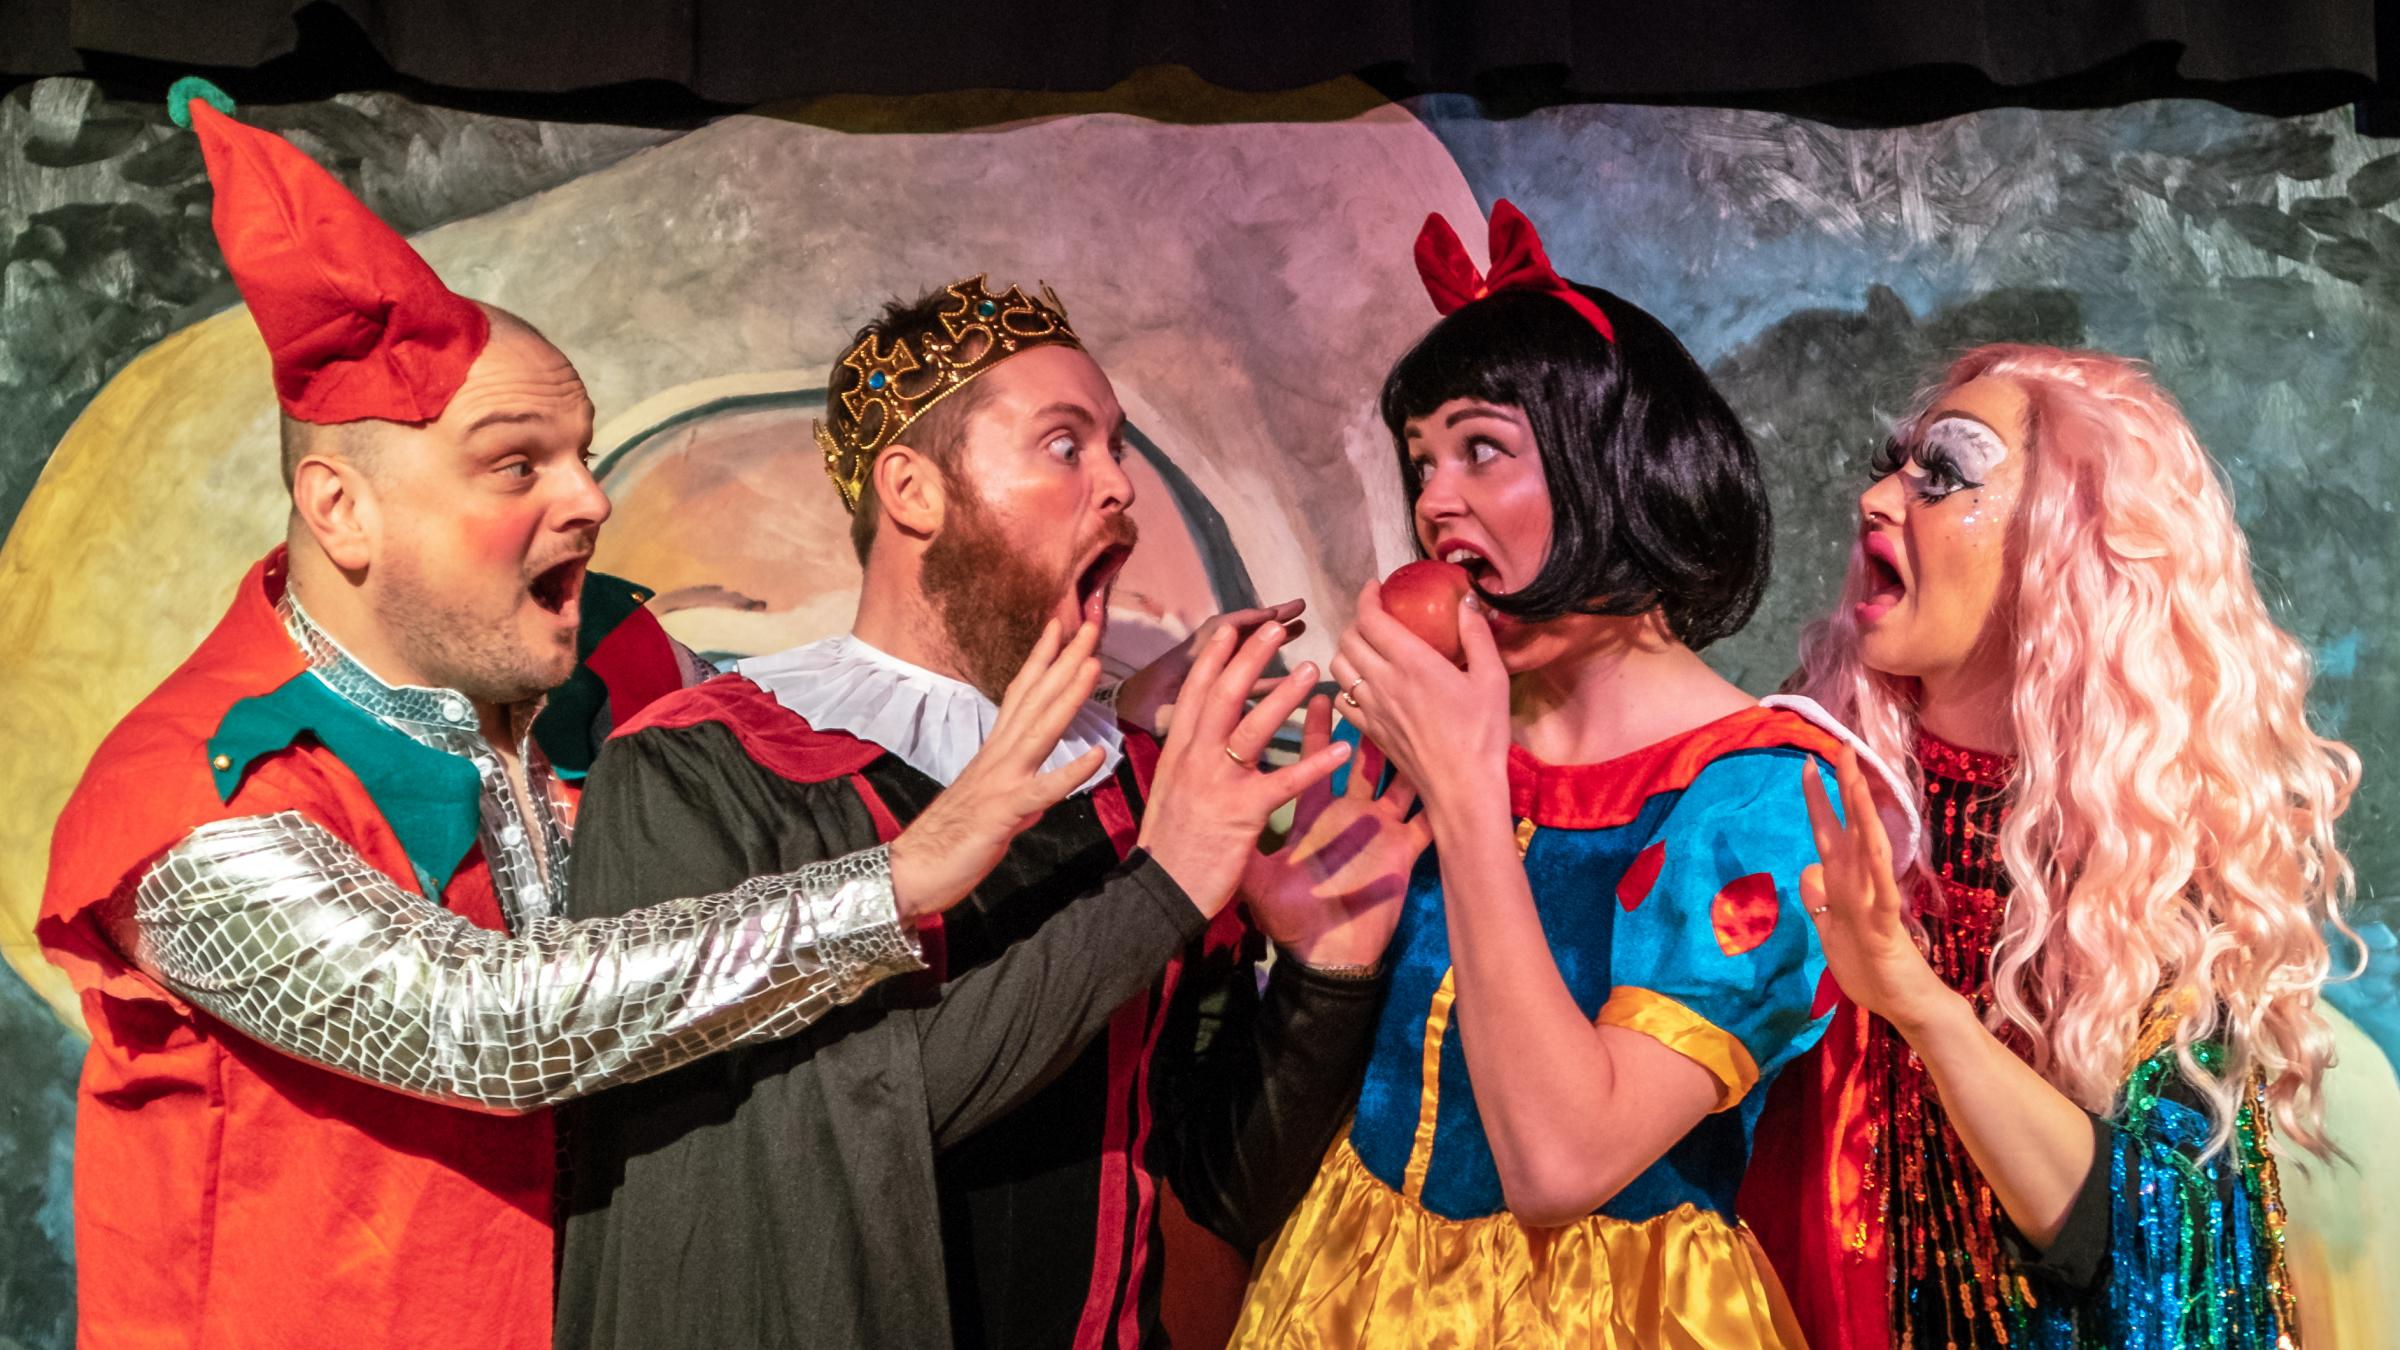 CHRISTMAS PANTO: Snow White 2: Appley Ever After will be performed at The Stand comedy club in Newcastle